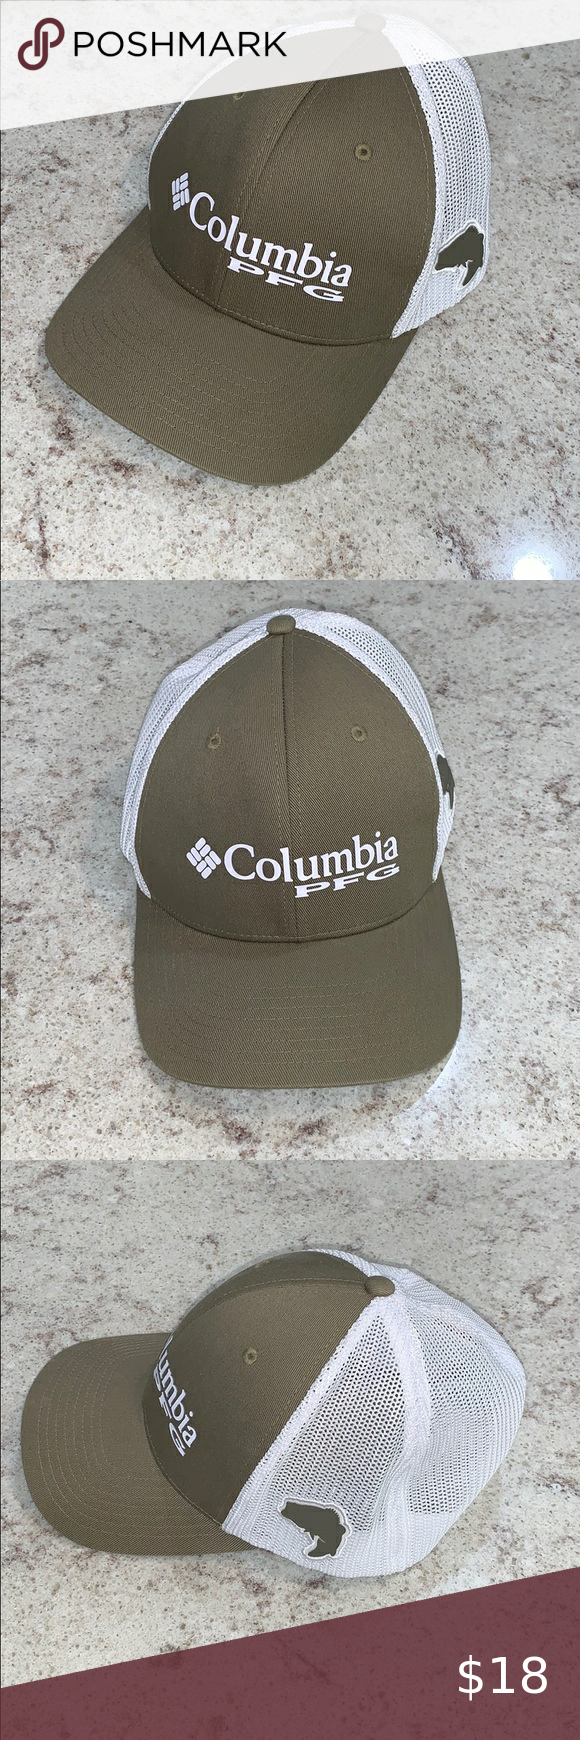 Columbia Pfg Olive Green Hat With Mesh Unisex L Xl Olive Green Hat Columbia Pfg Olive Green